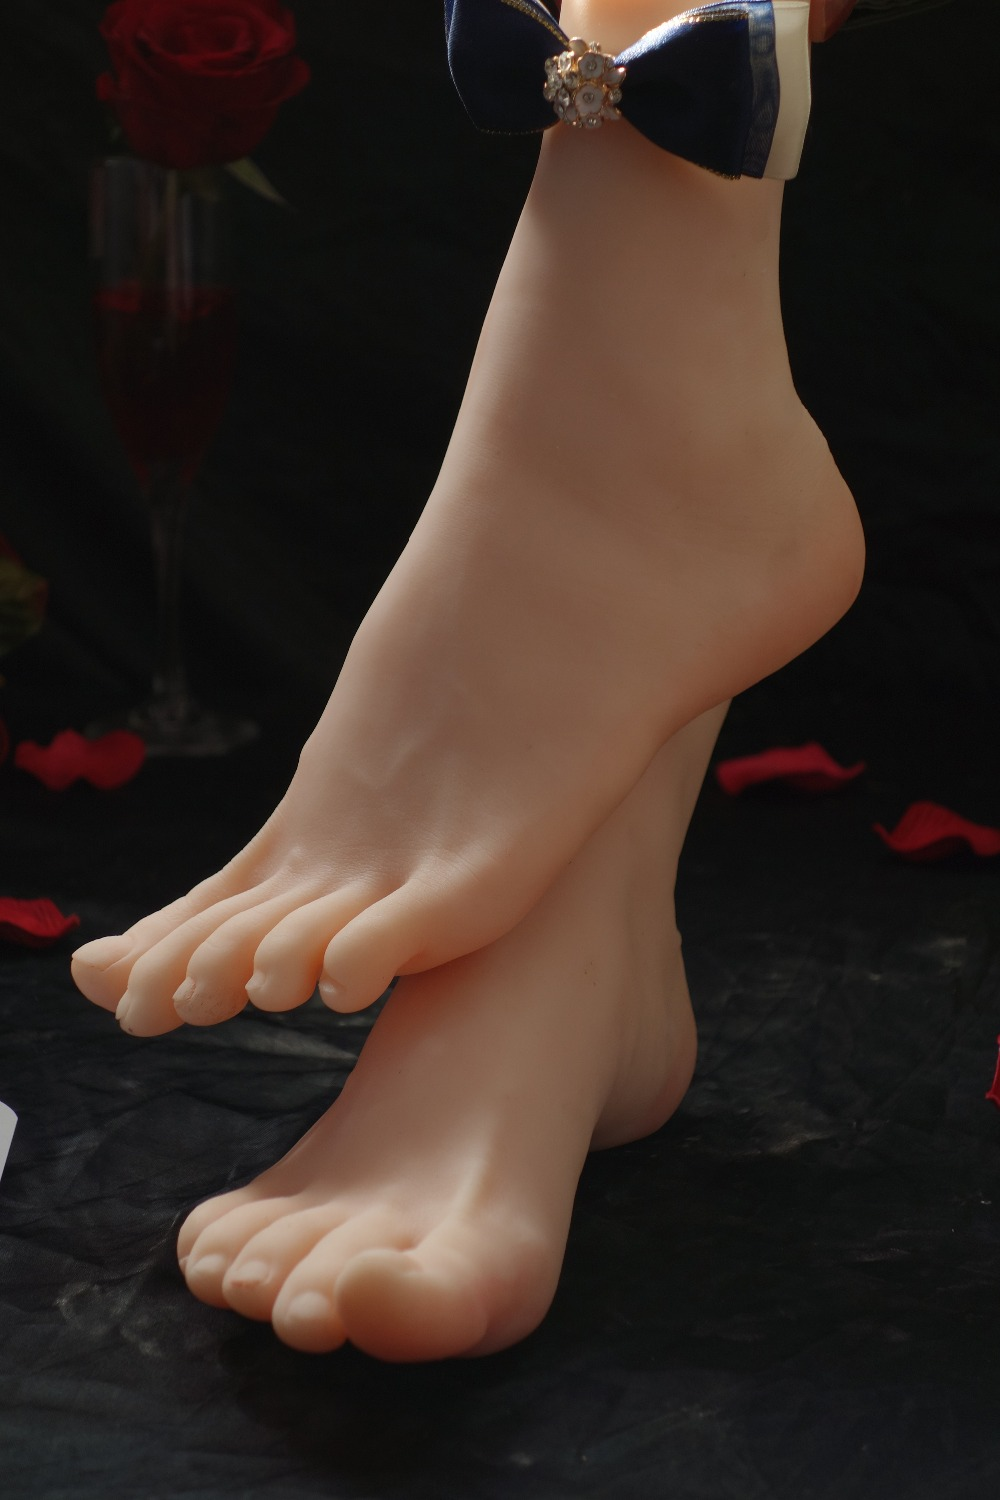 Newest cloning silicone Pussy female women foot Feet Soldier fetish leg model footfetish worship whitening skinNewest cloning silicone Pussy female women foot Feet Soldier fetish leg model footfetish worship whitening skin